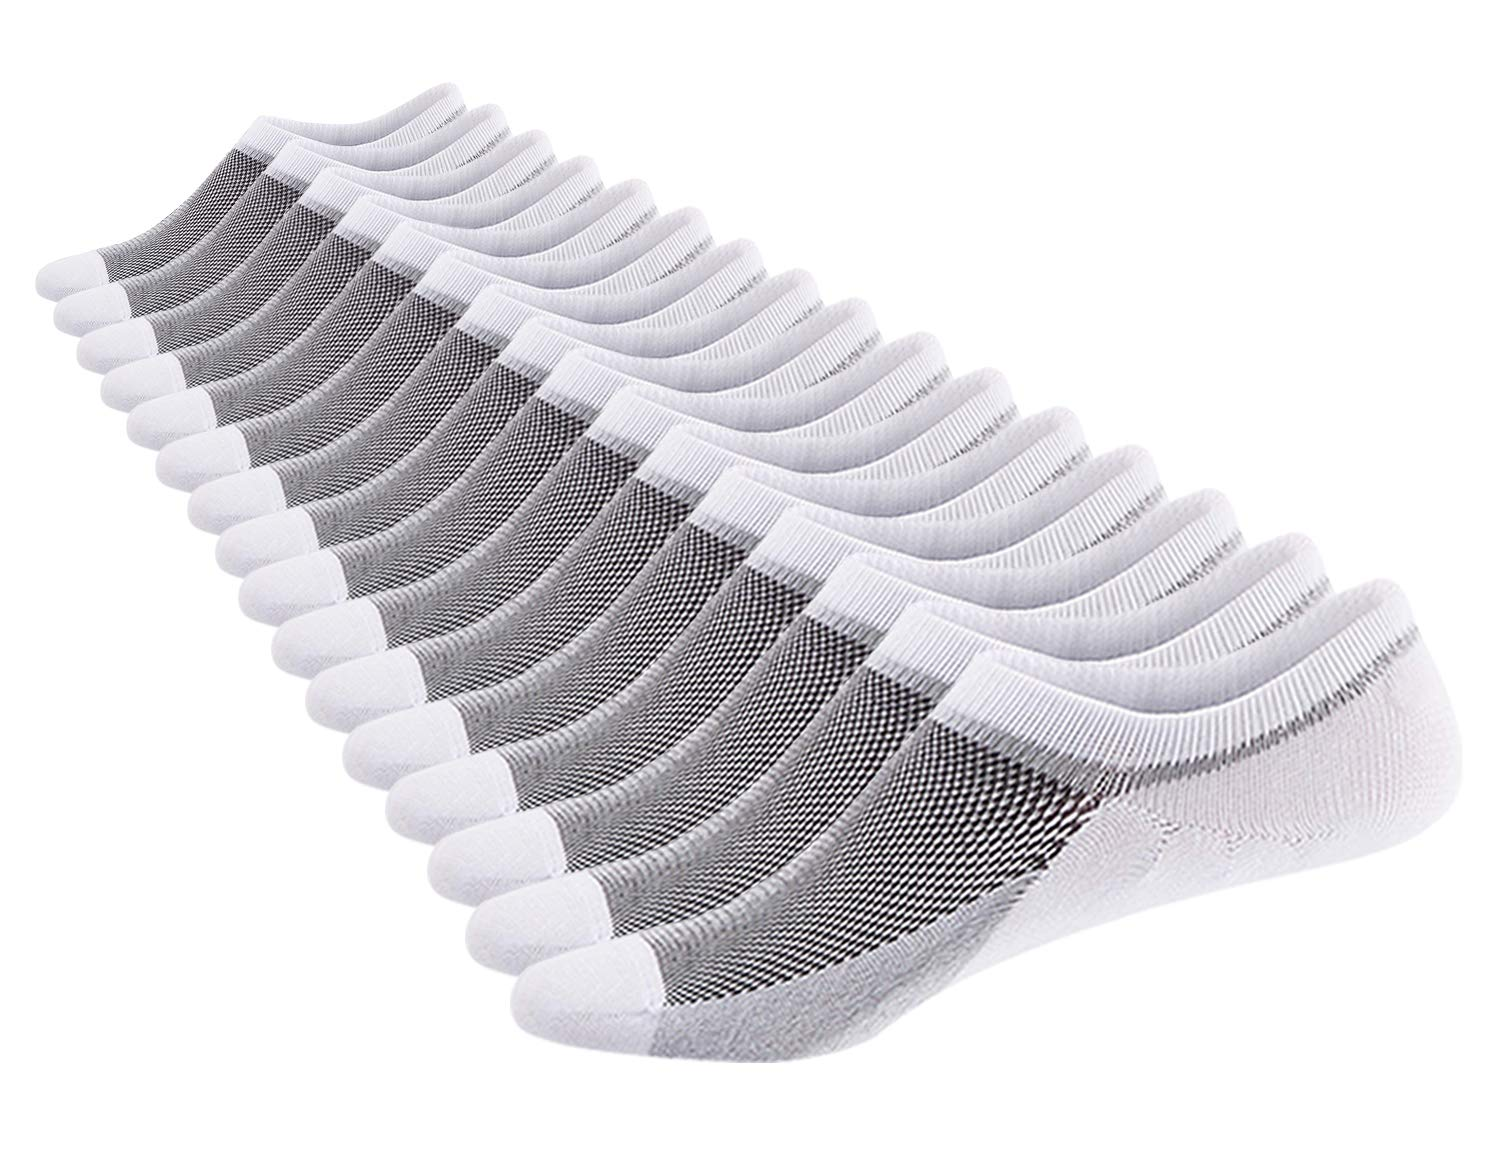 SIXDAYSOX Men\'s No Show Socks Cotton Non Slip Low Cut Ankle Invisible Socks Mesh Knit Shoe Size 6-11 Sock Size 10-13 Pack of 8 White